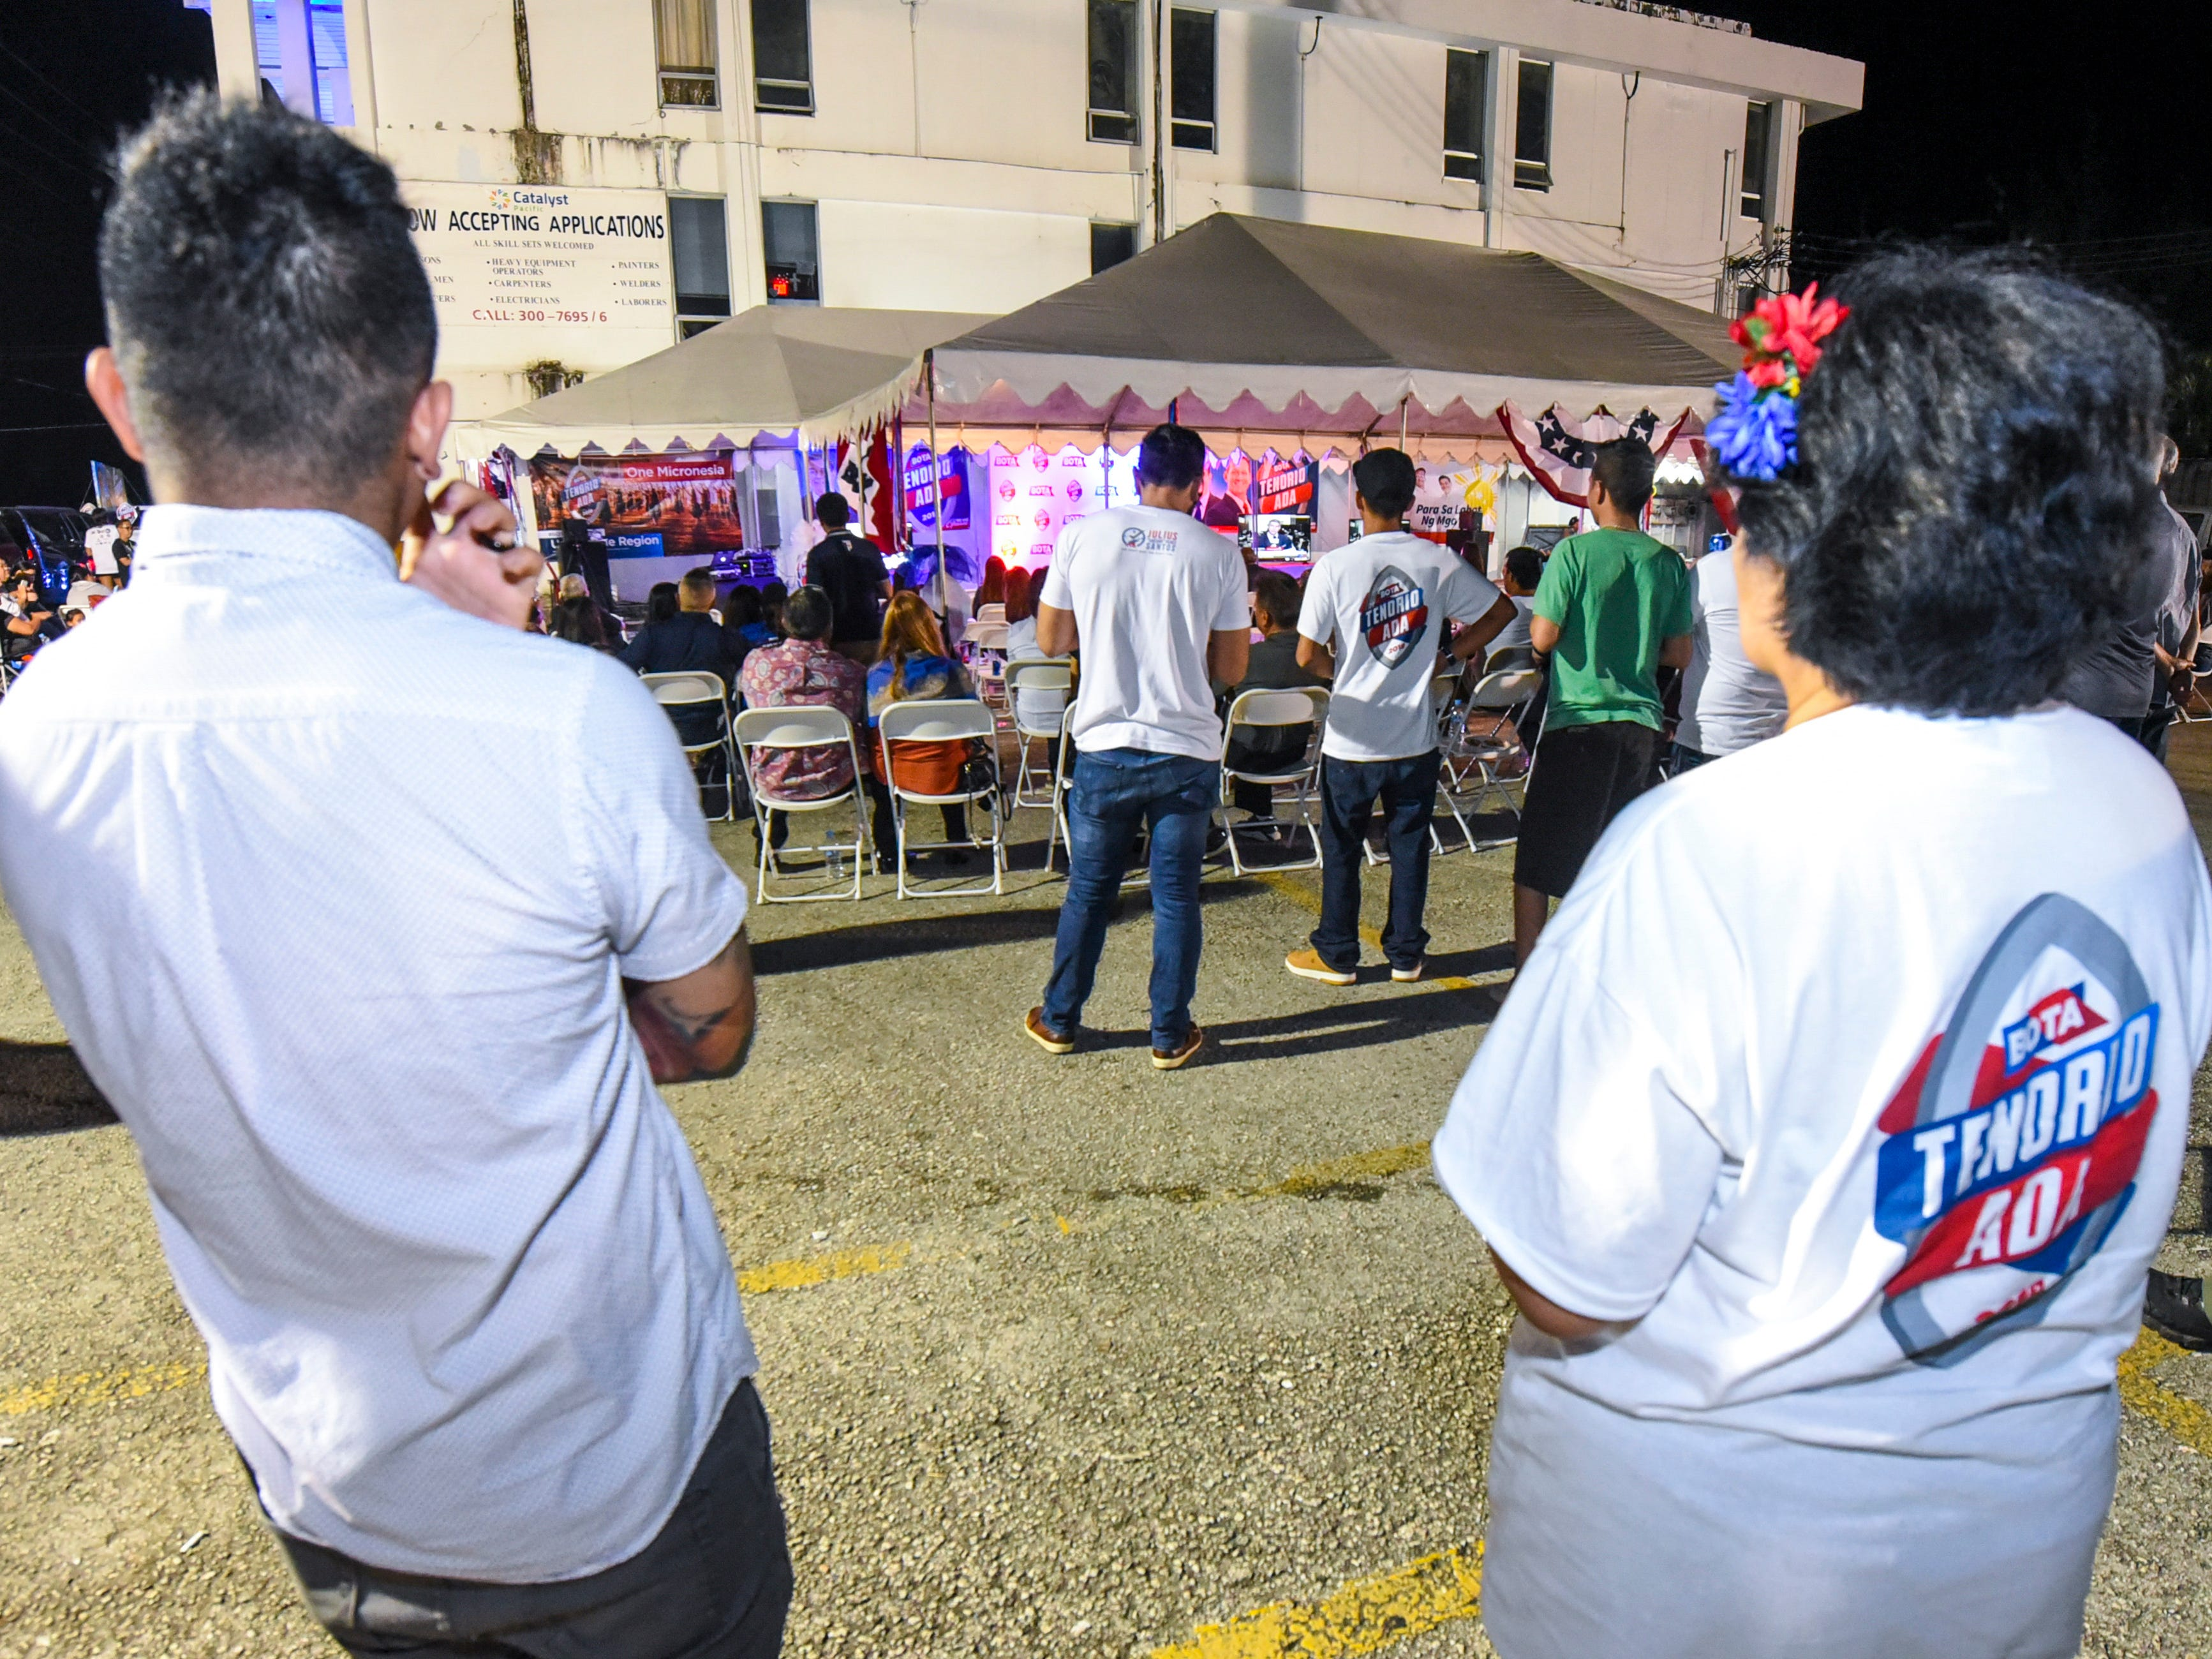 Supporters of the Republican gubernatorial team of Lt. Gov. Ray Tenorio and Sen. Tony Ada listen to the results of the latest election returns outside the team's campaign headquarters in Tamuning during the early morning hours of Wednesday, Nov. 7, 2018.